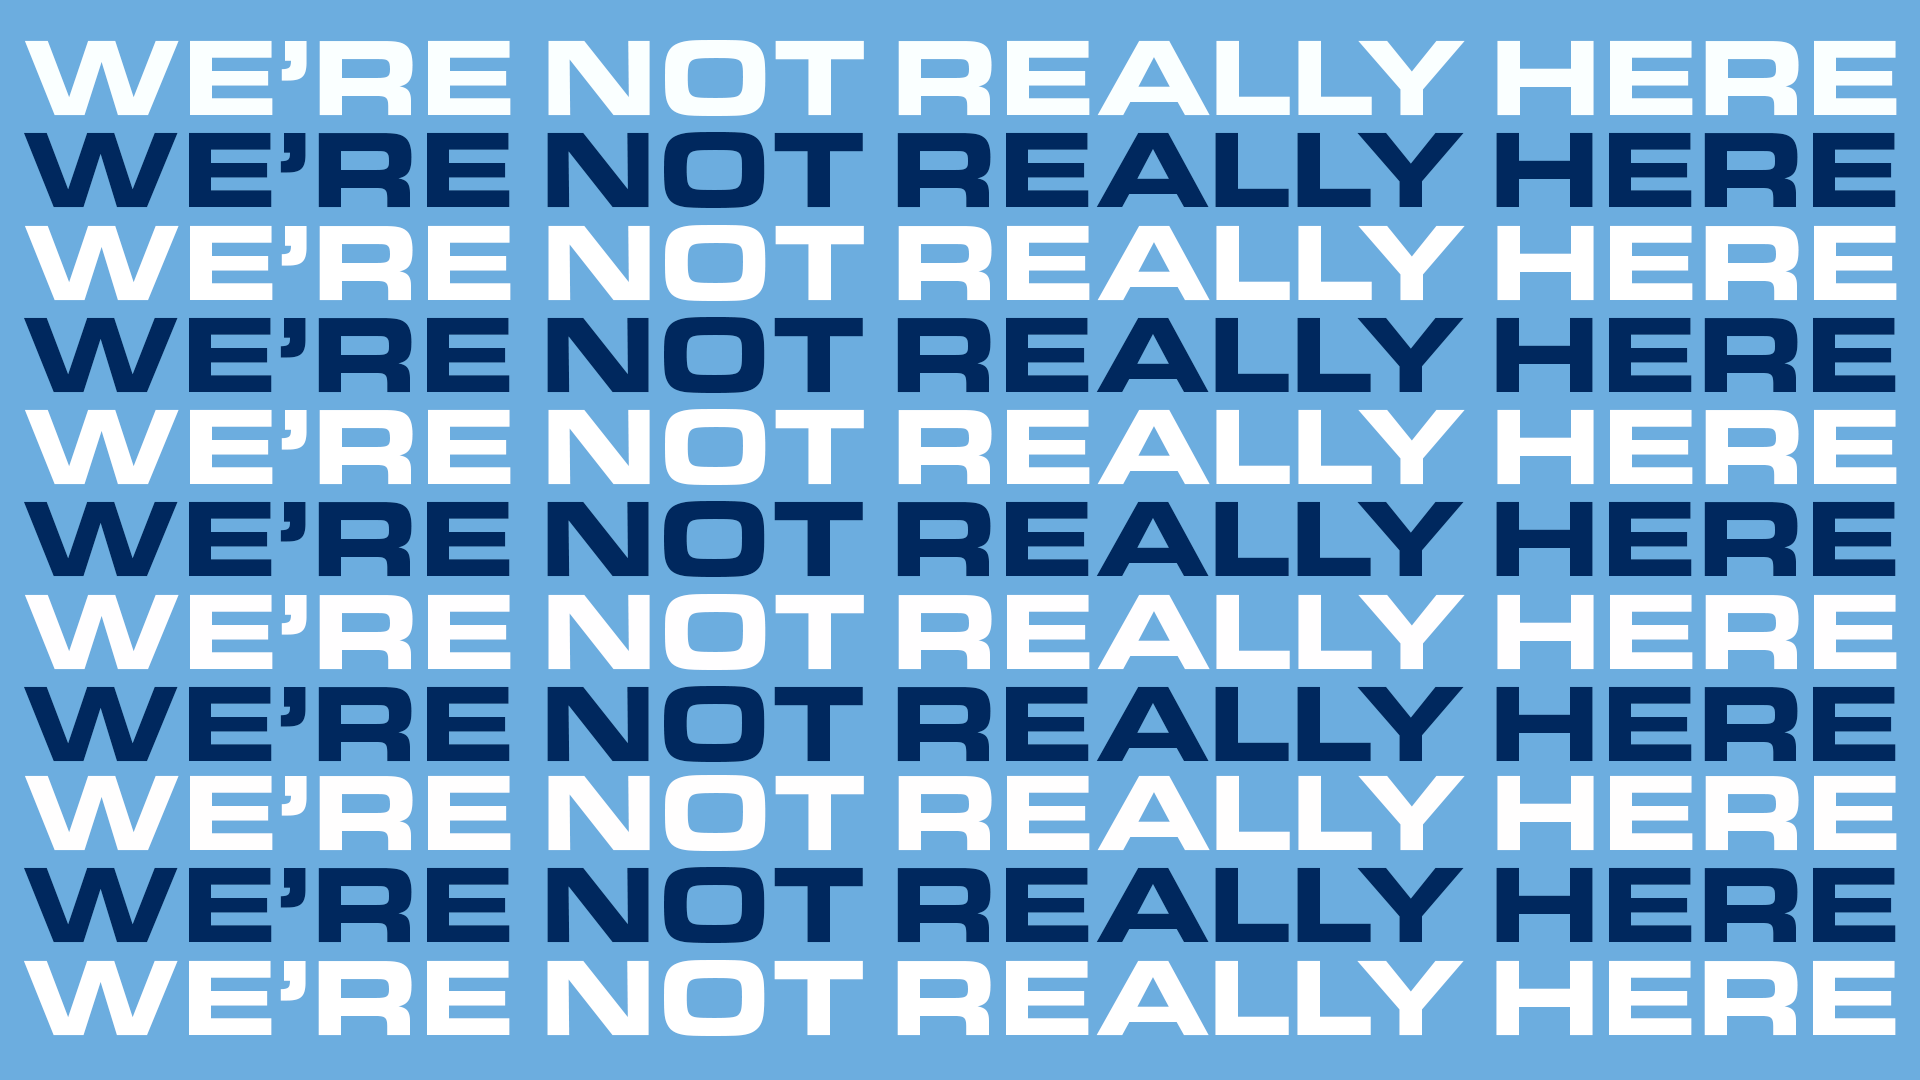 We're Not Really Here - Blue